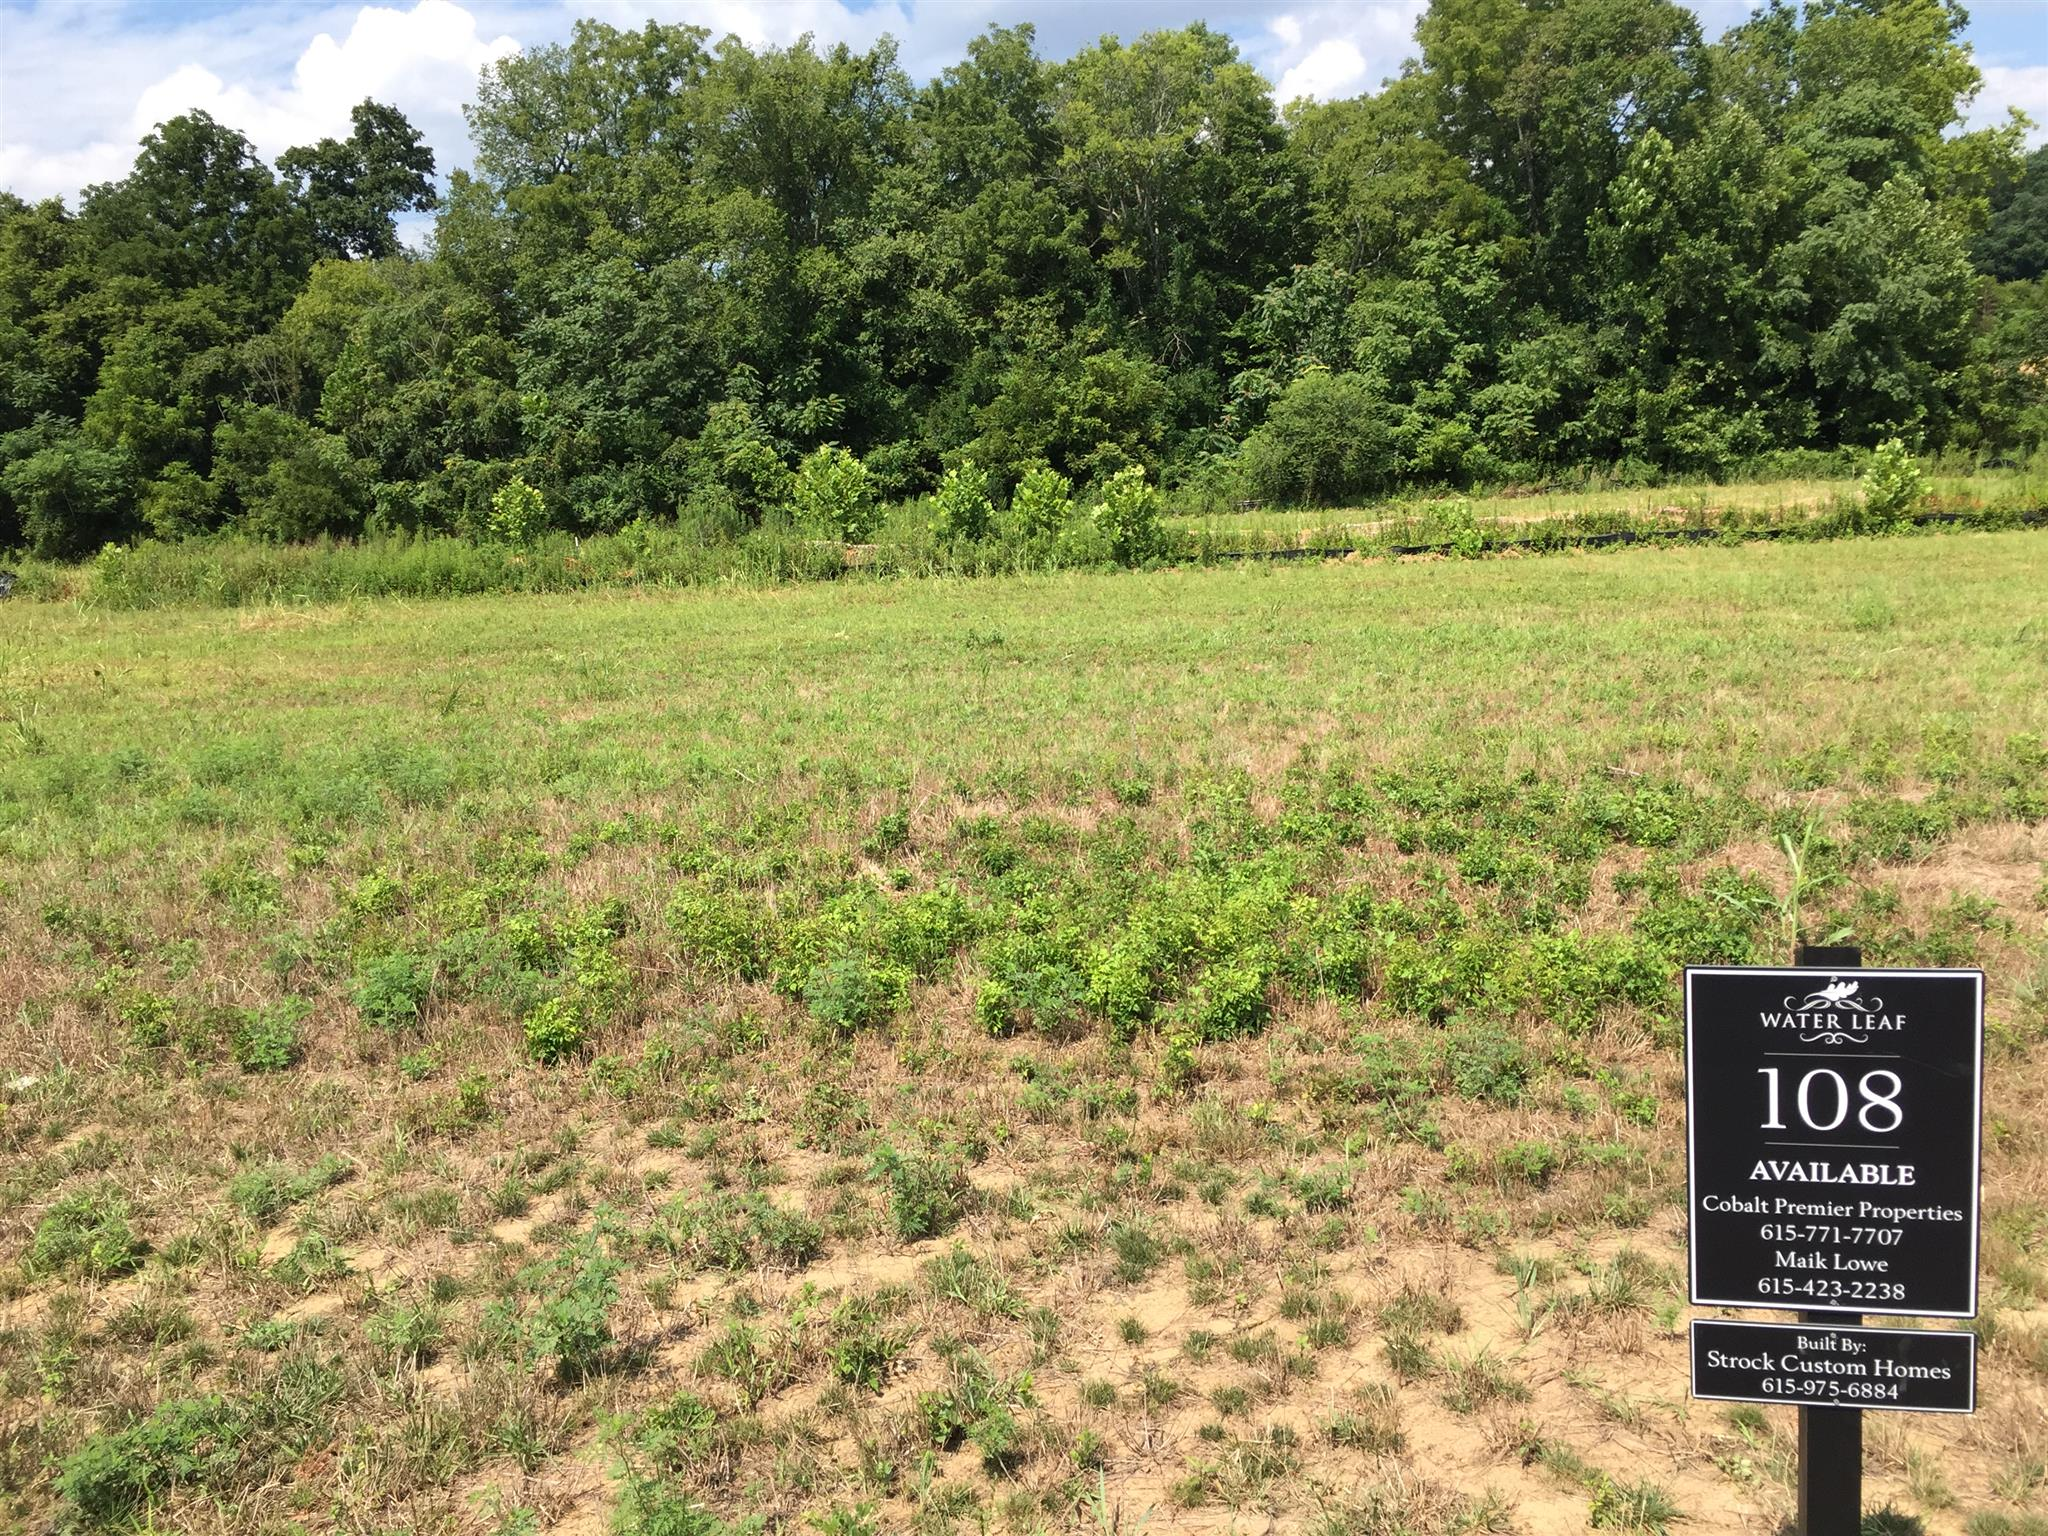 Beautiful corner lot with large building envelope (pool).  Backs to a tree line and creek,  Water Leaf off Gosey HIll Road will have 24 total homes. 4 bedroom perc site,  Builder is Strock Custom Homes.  Build your dream home.